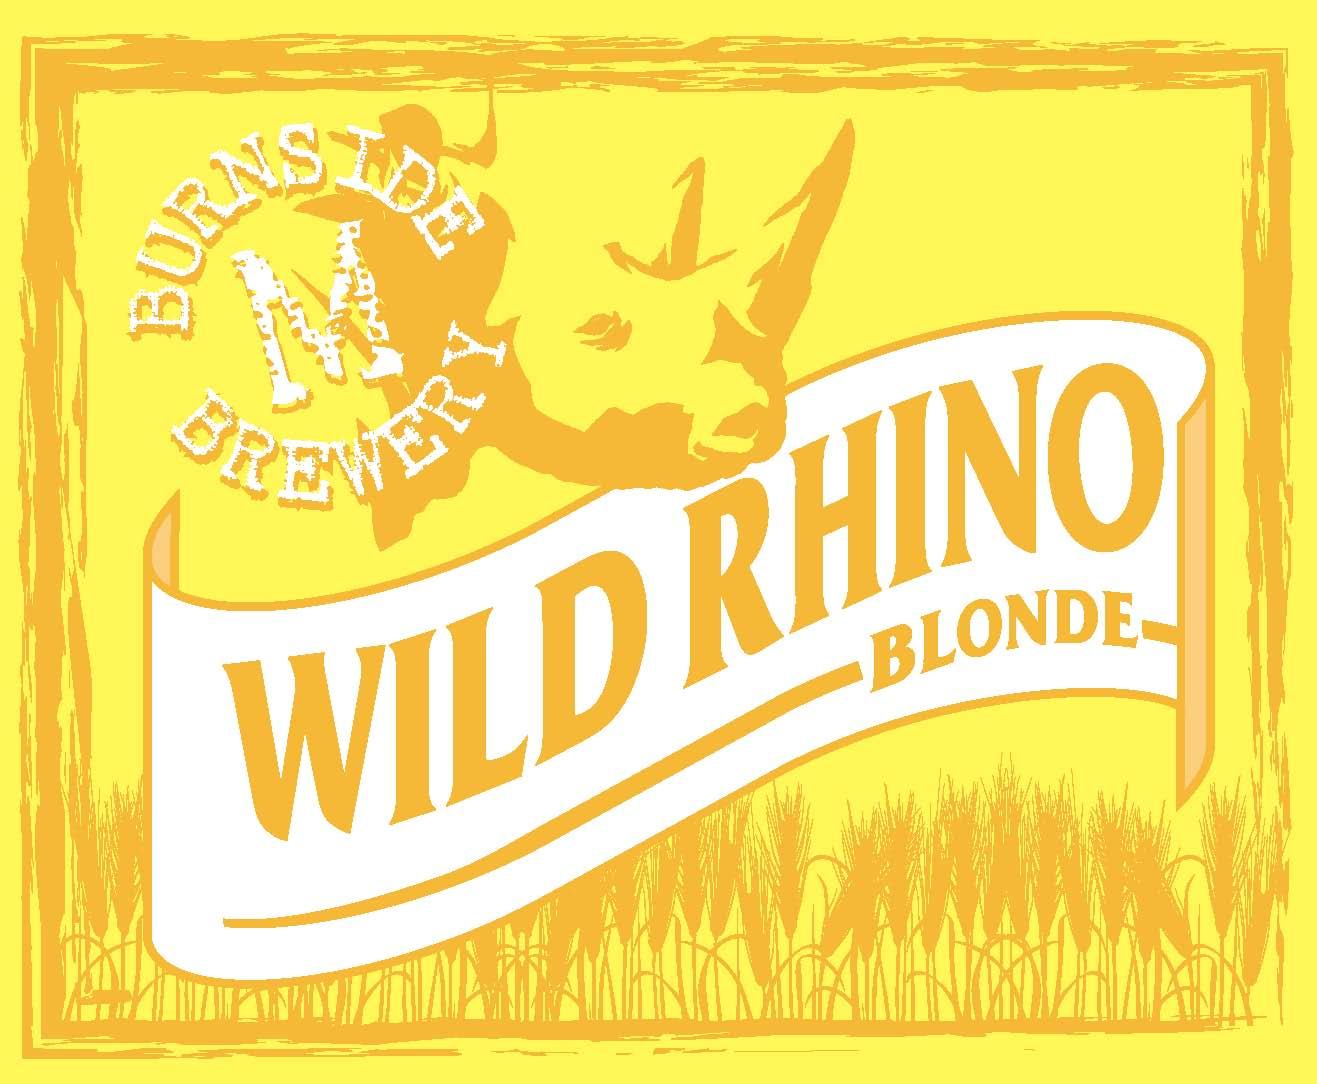 5. WILD RHINO Blonde Beer